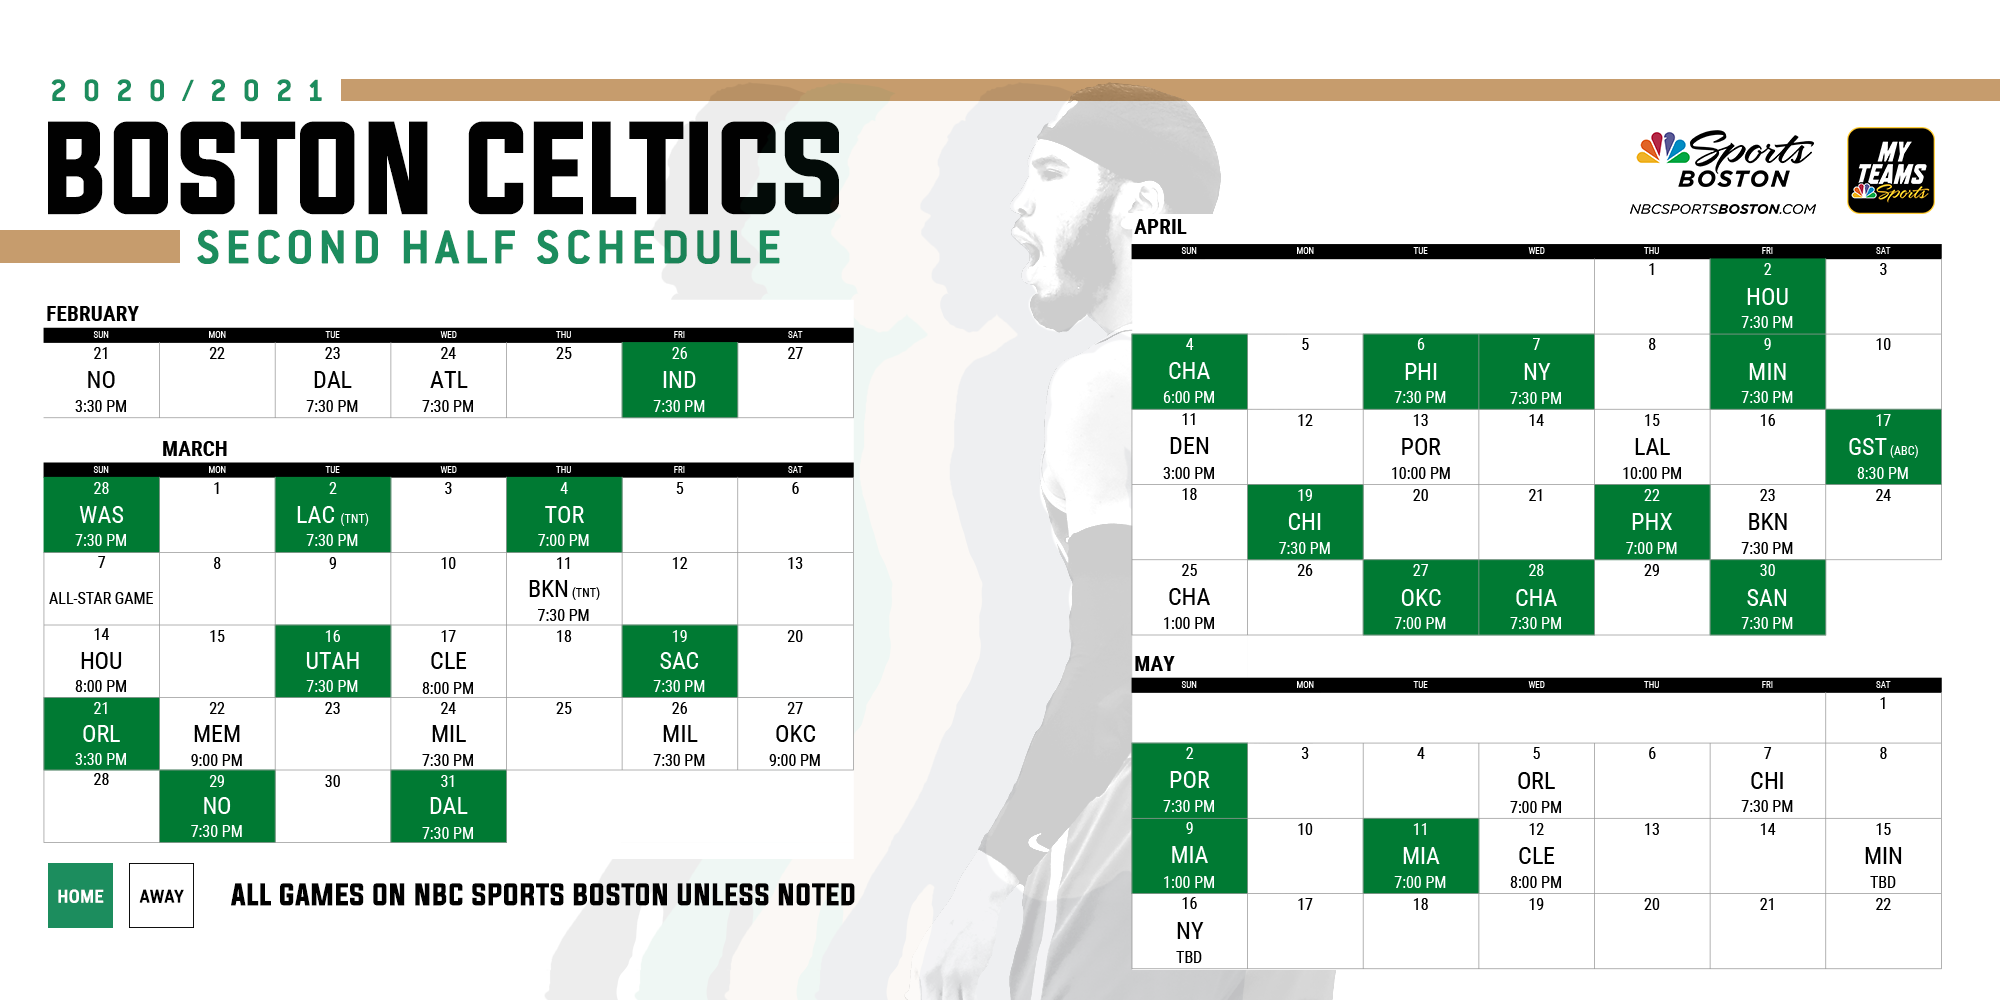 https://media.nbcboston.com/2021/02/celtics-schedule.png